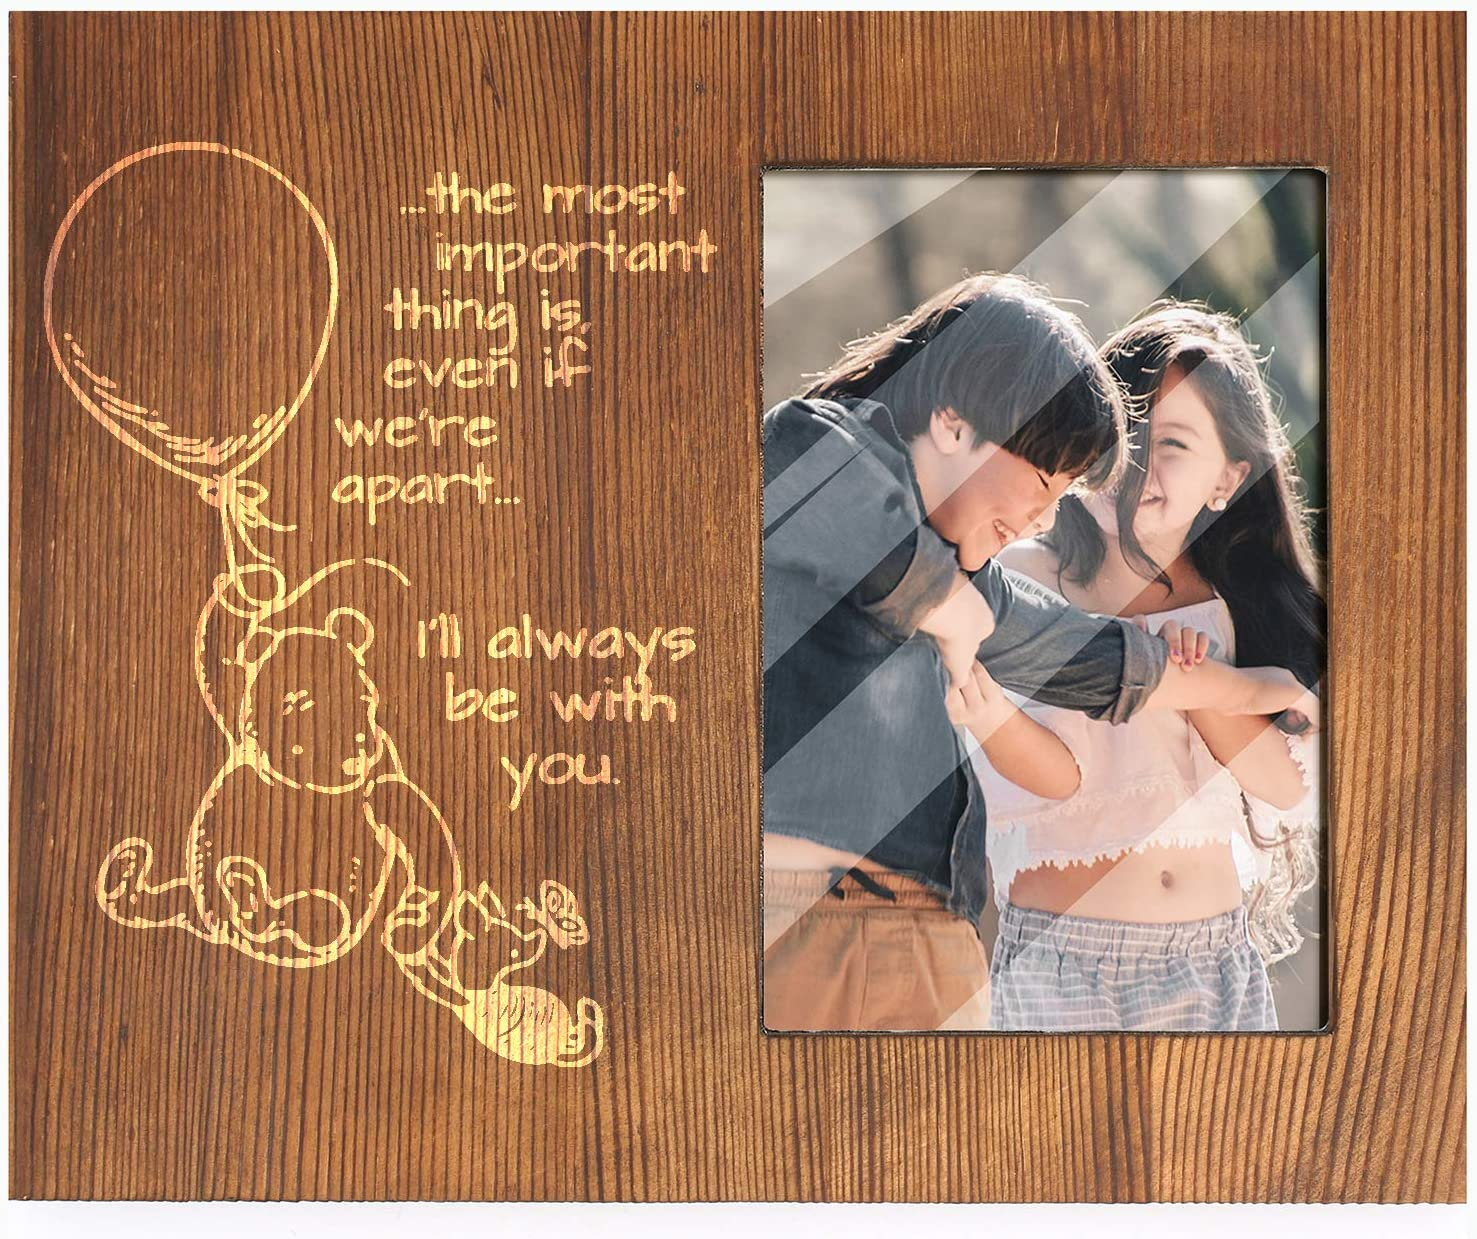 Ku-dayi I Will Always Be With You-Inspirational Winnie The Pooh Quotes Picture Photo Frame -Best Friendship Gifts for Friends, Sisters or Bridesmaid